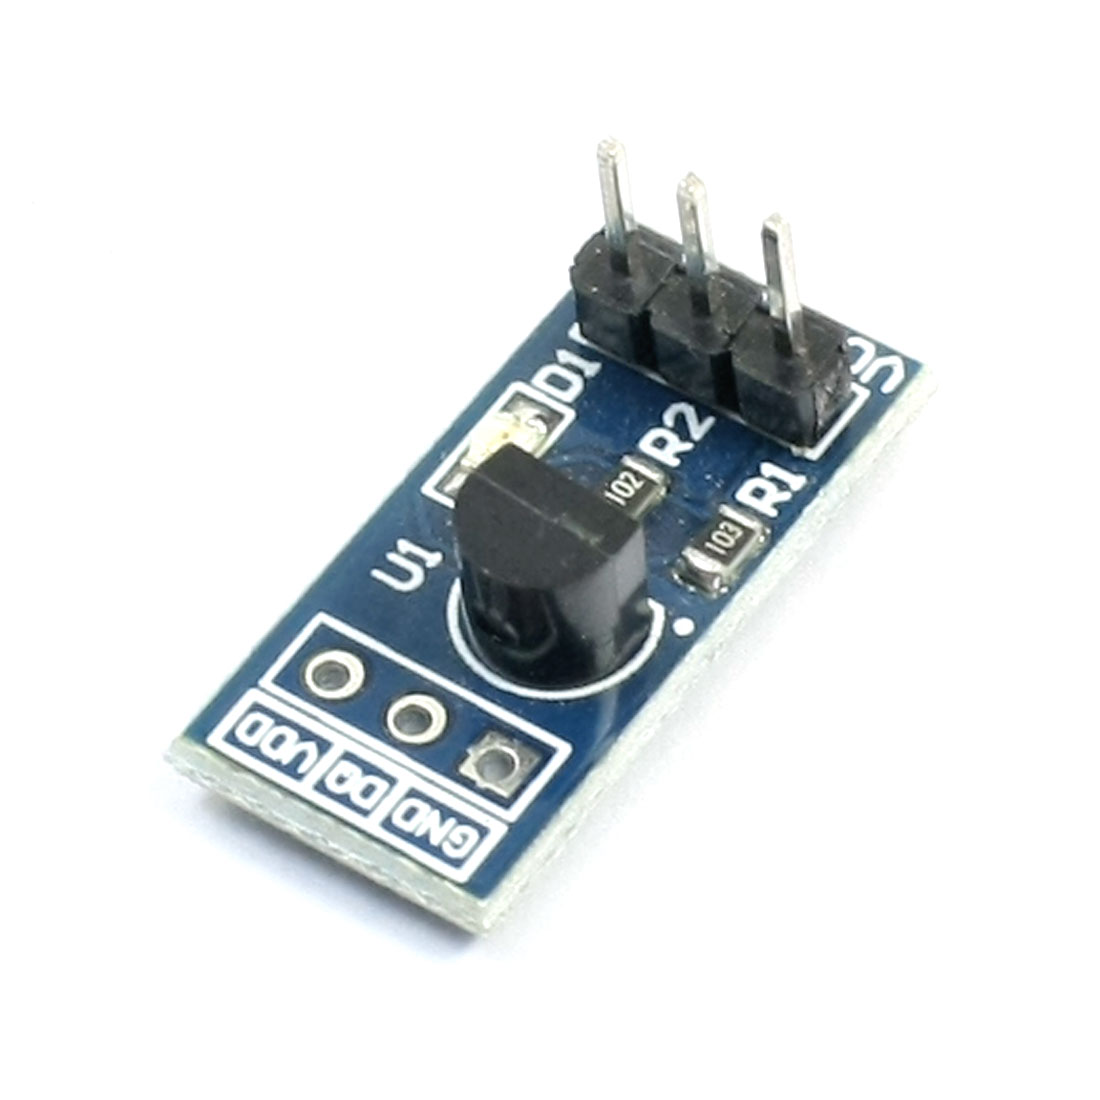 DS18B20 Chip 3 Poles Temperature Sensor Module for Smart Cars